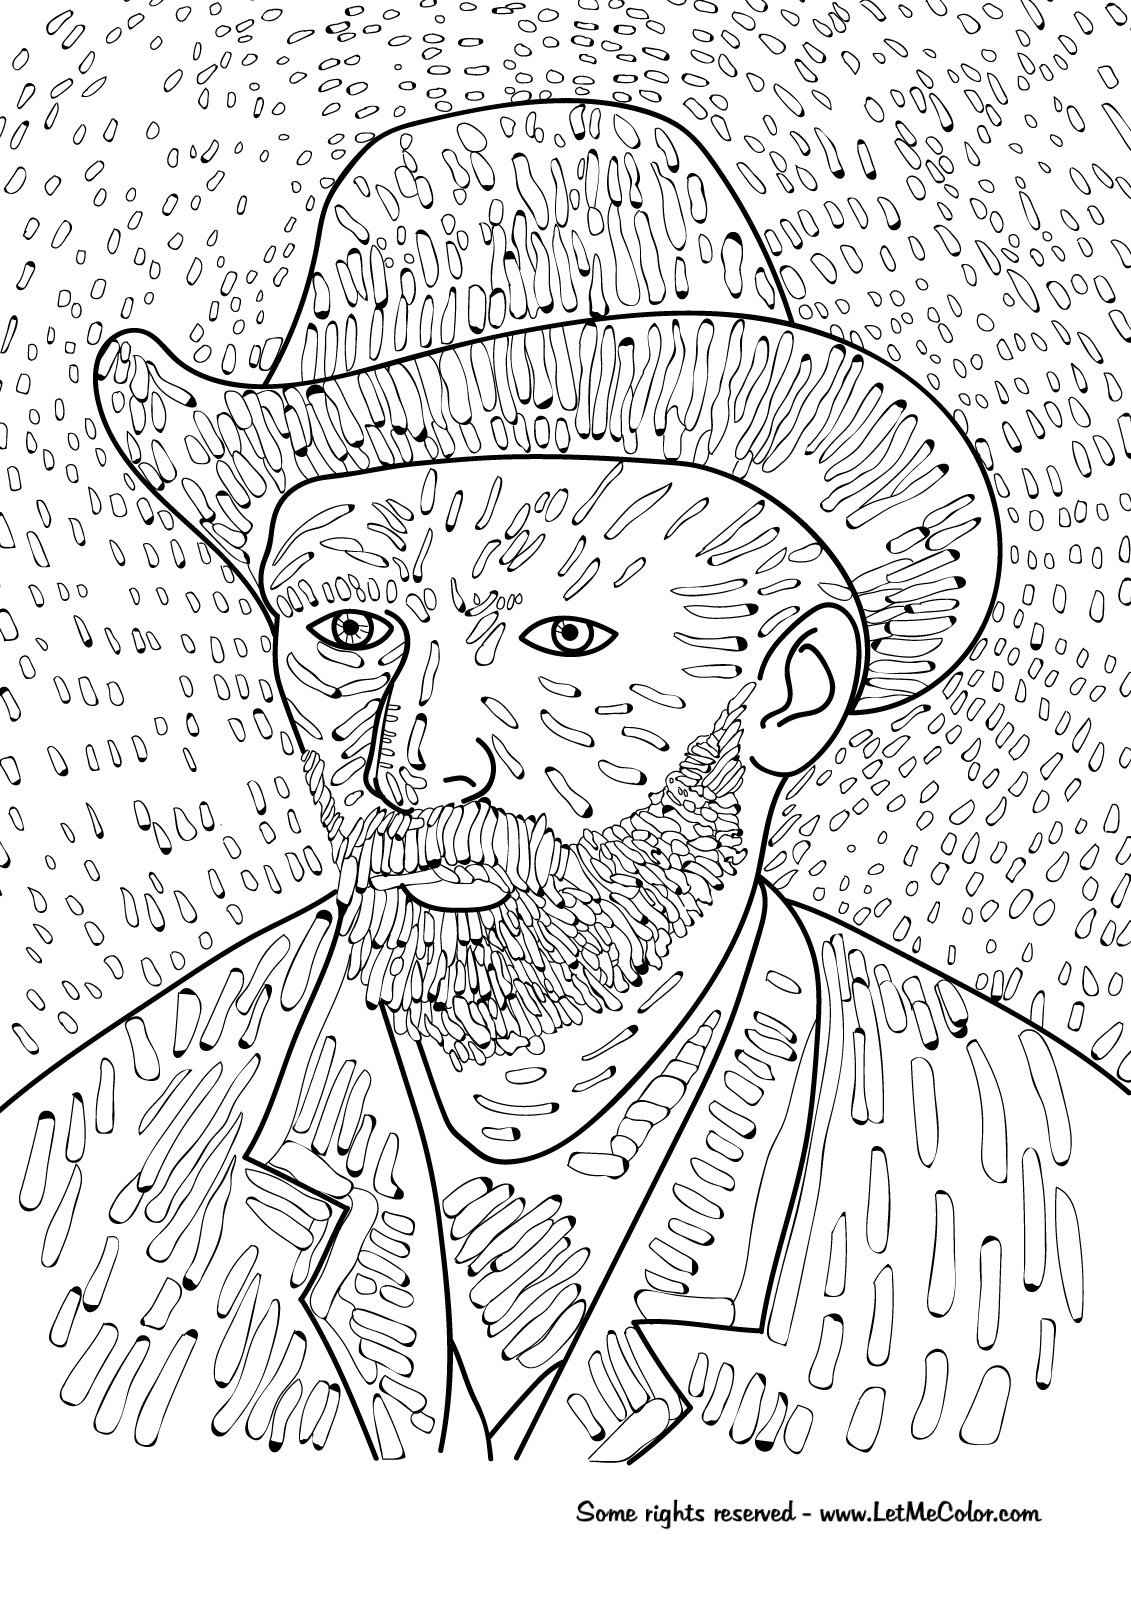 Coloring Page Of Vincent Van Gogh's Self